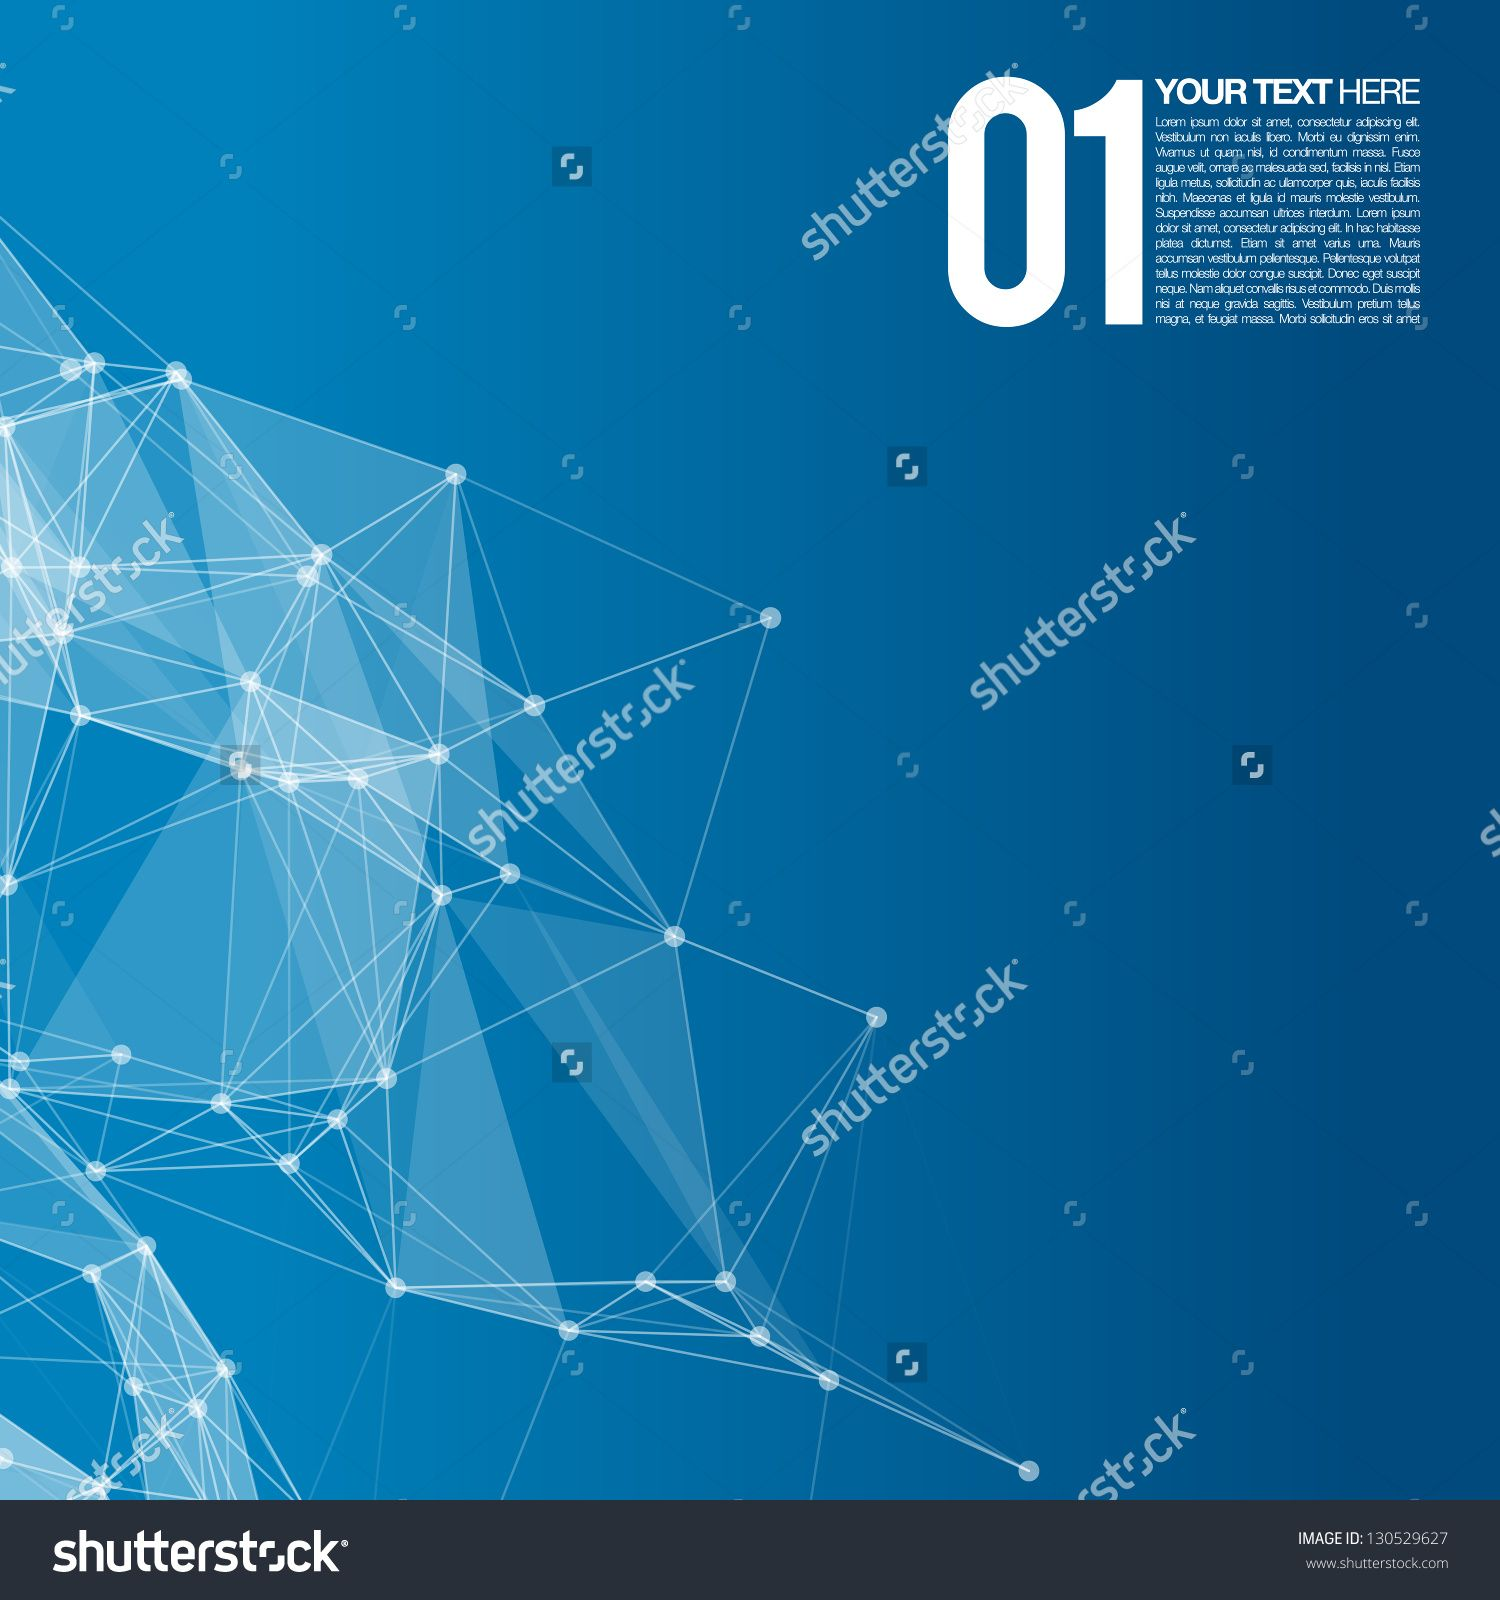 stock-vector-abstract-mesh-background-with-circles-lines-and-shapes-eps-futuristic-design-130529627.jpg (1500×1600)